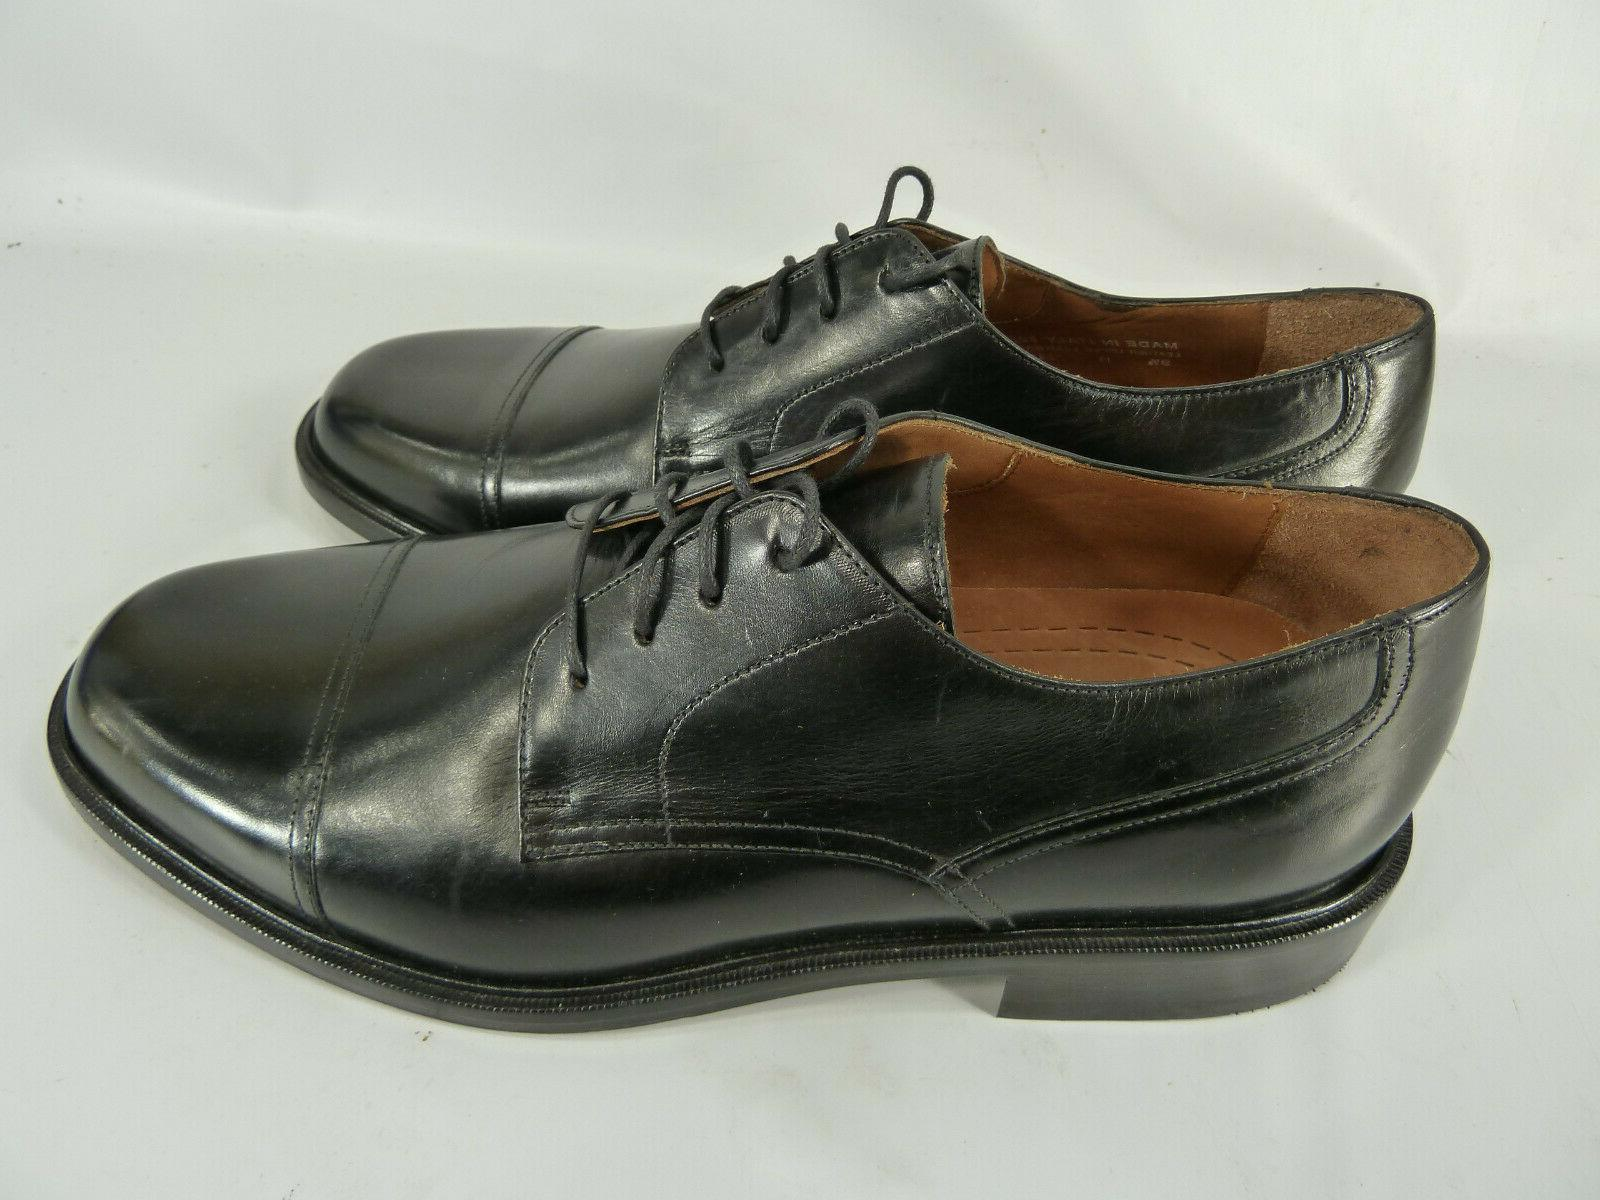 BOSTONIAN Oxford Shoes Made in